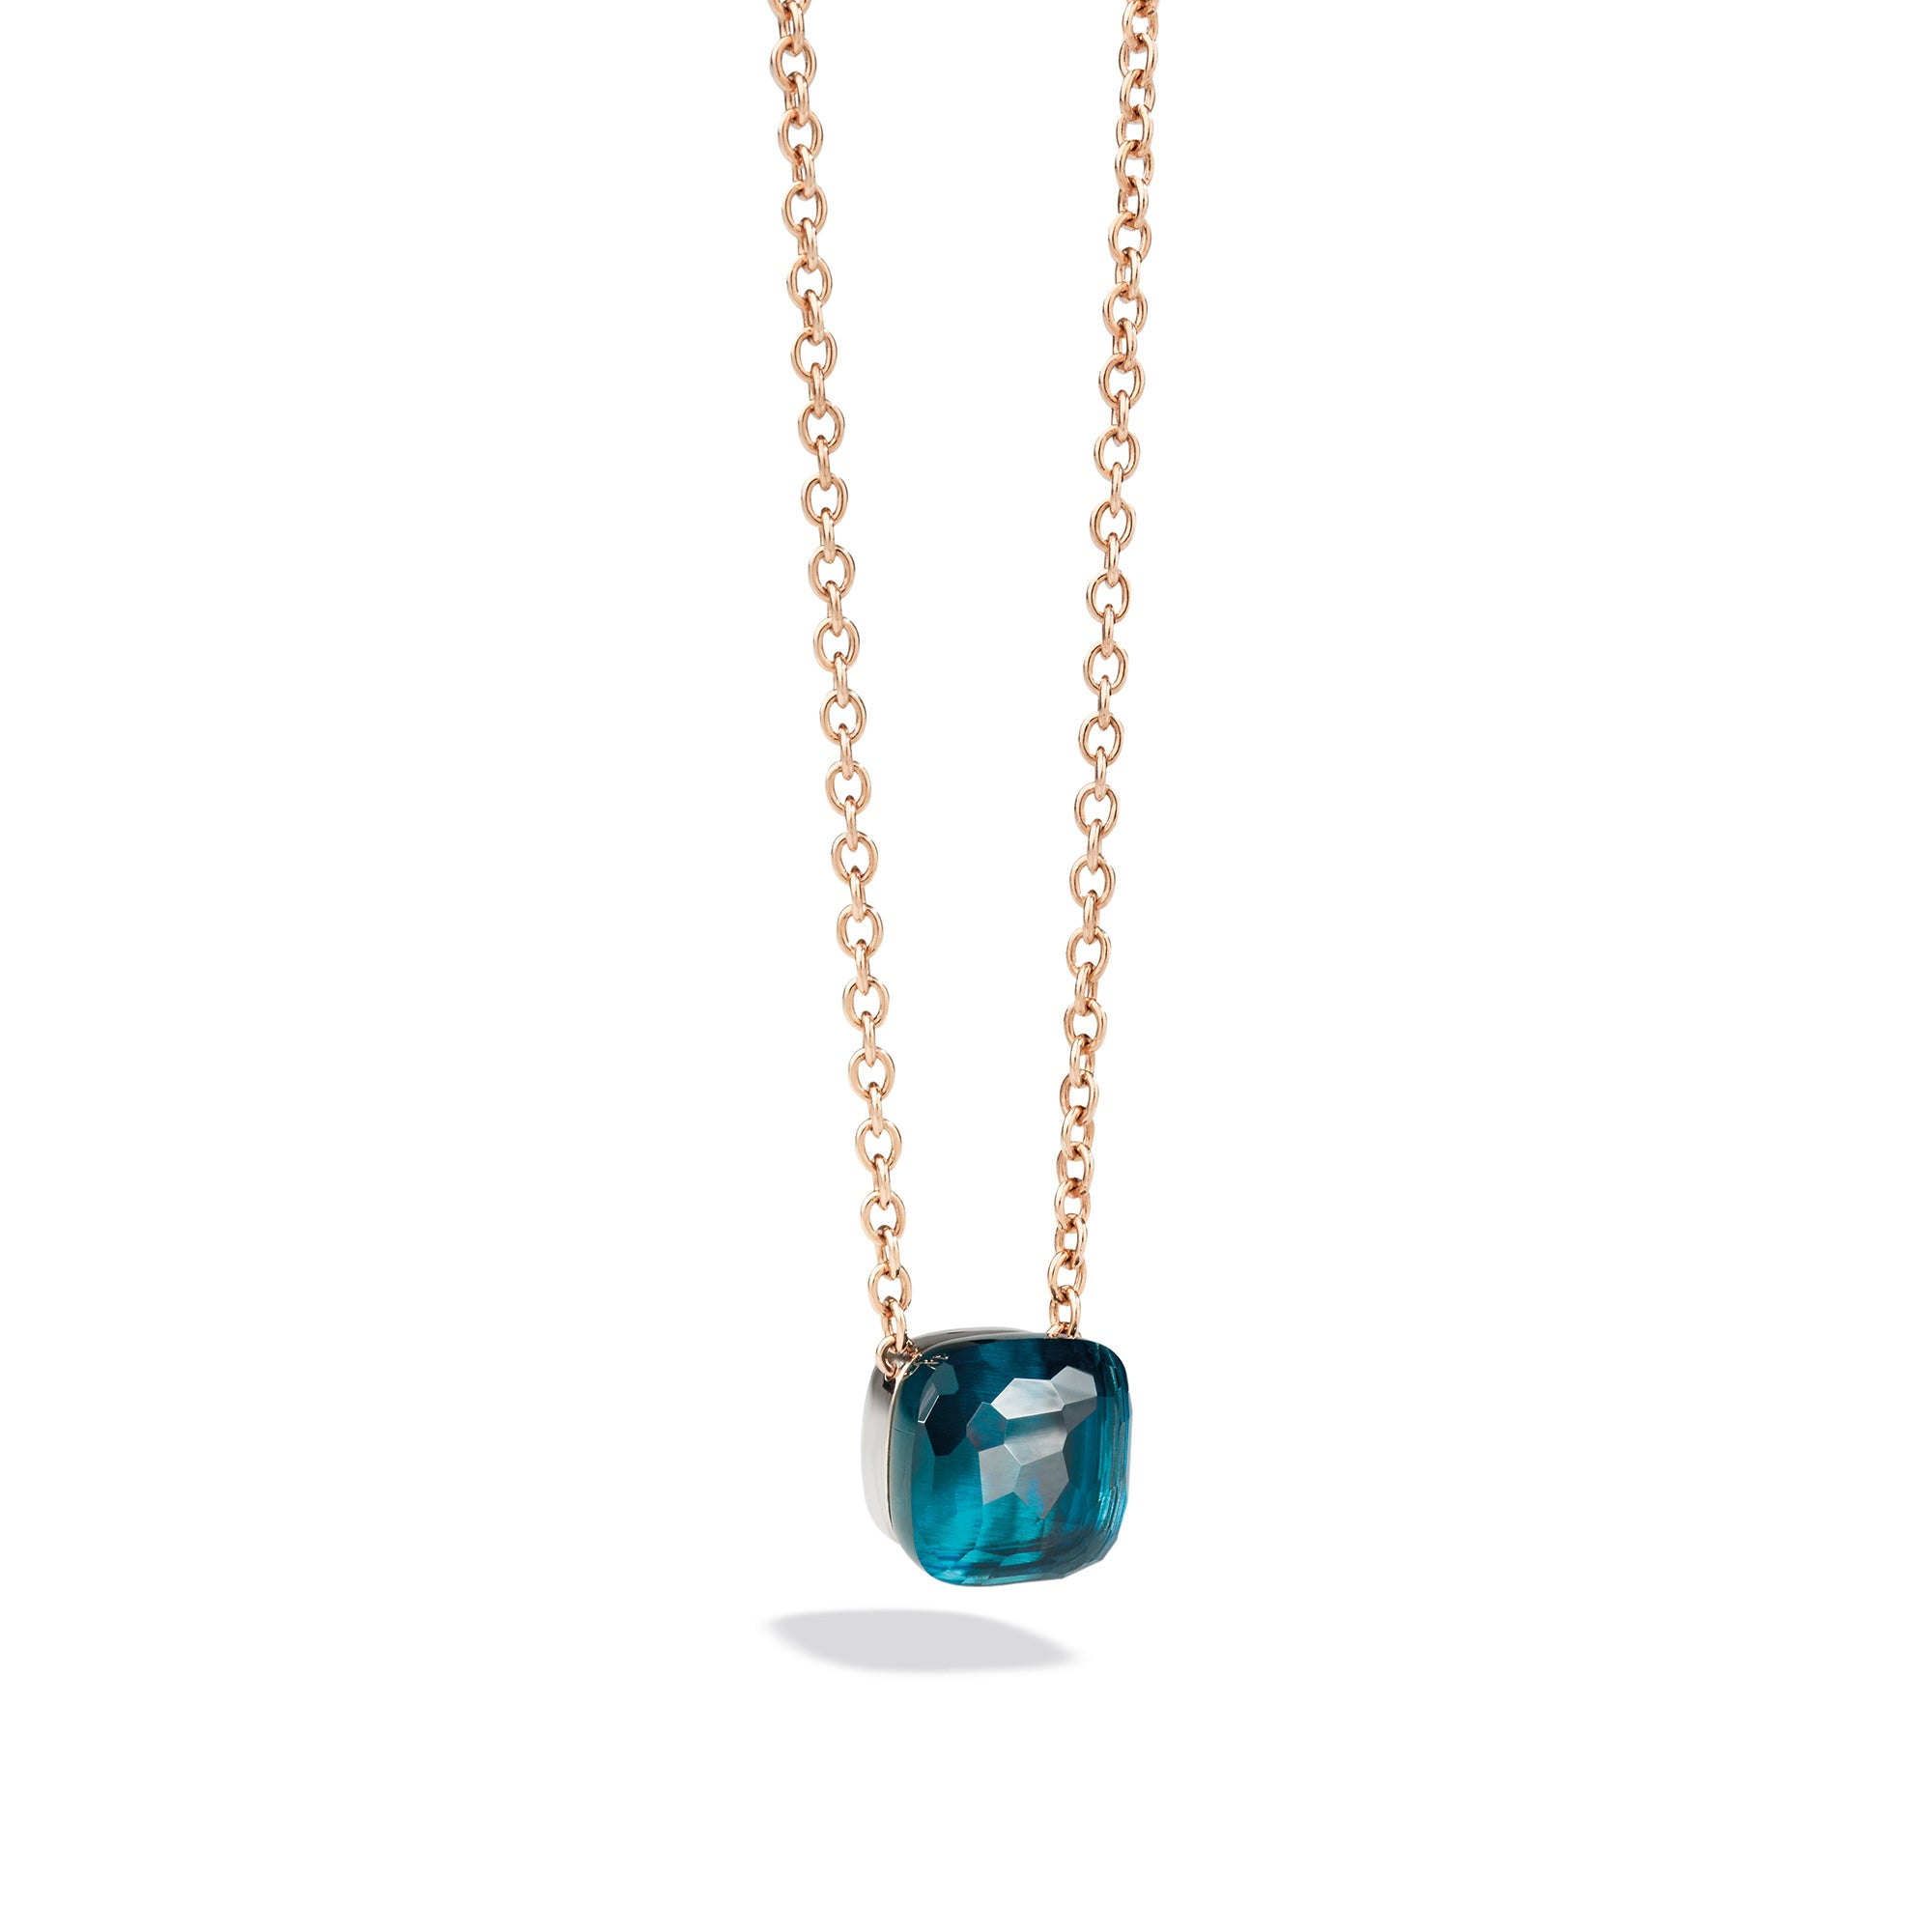 Nudo Necklace with Large Pendant in 18k rose and white gold and Blue Topaz - Orsini Jewellers NZ